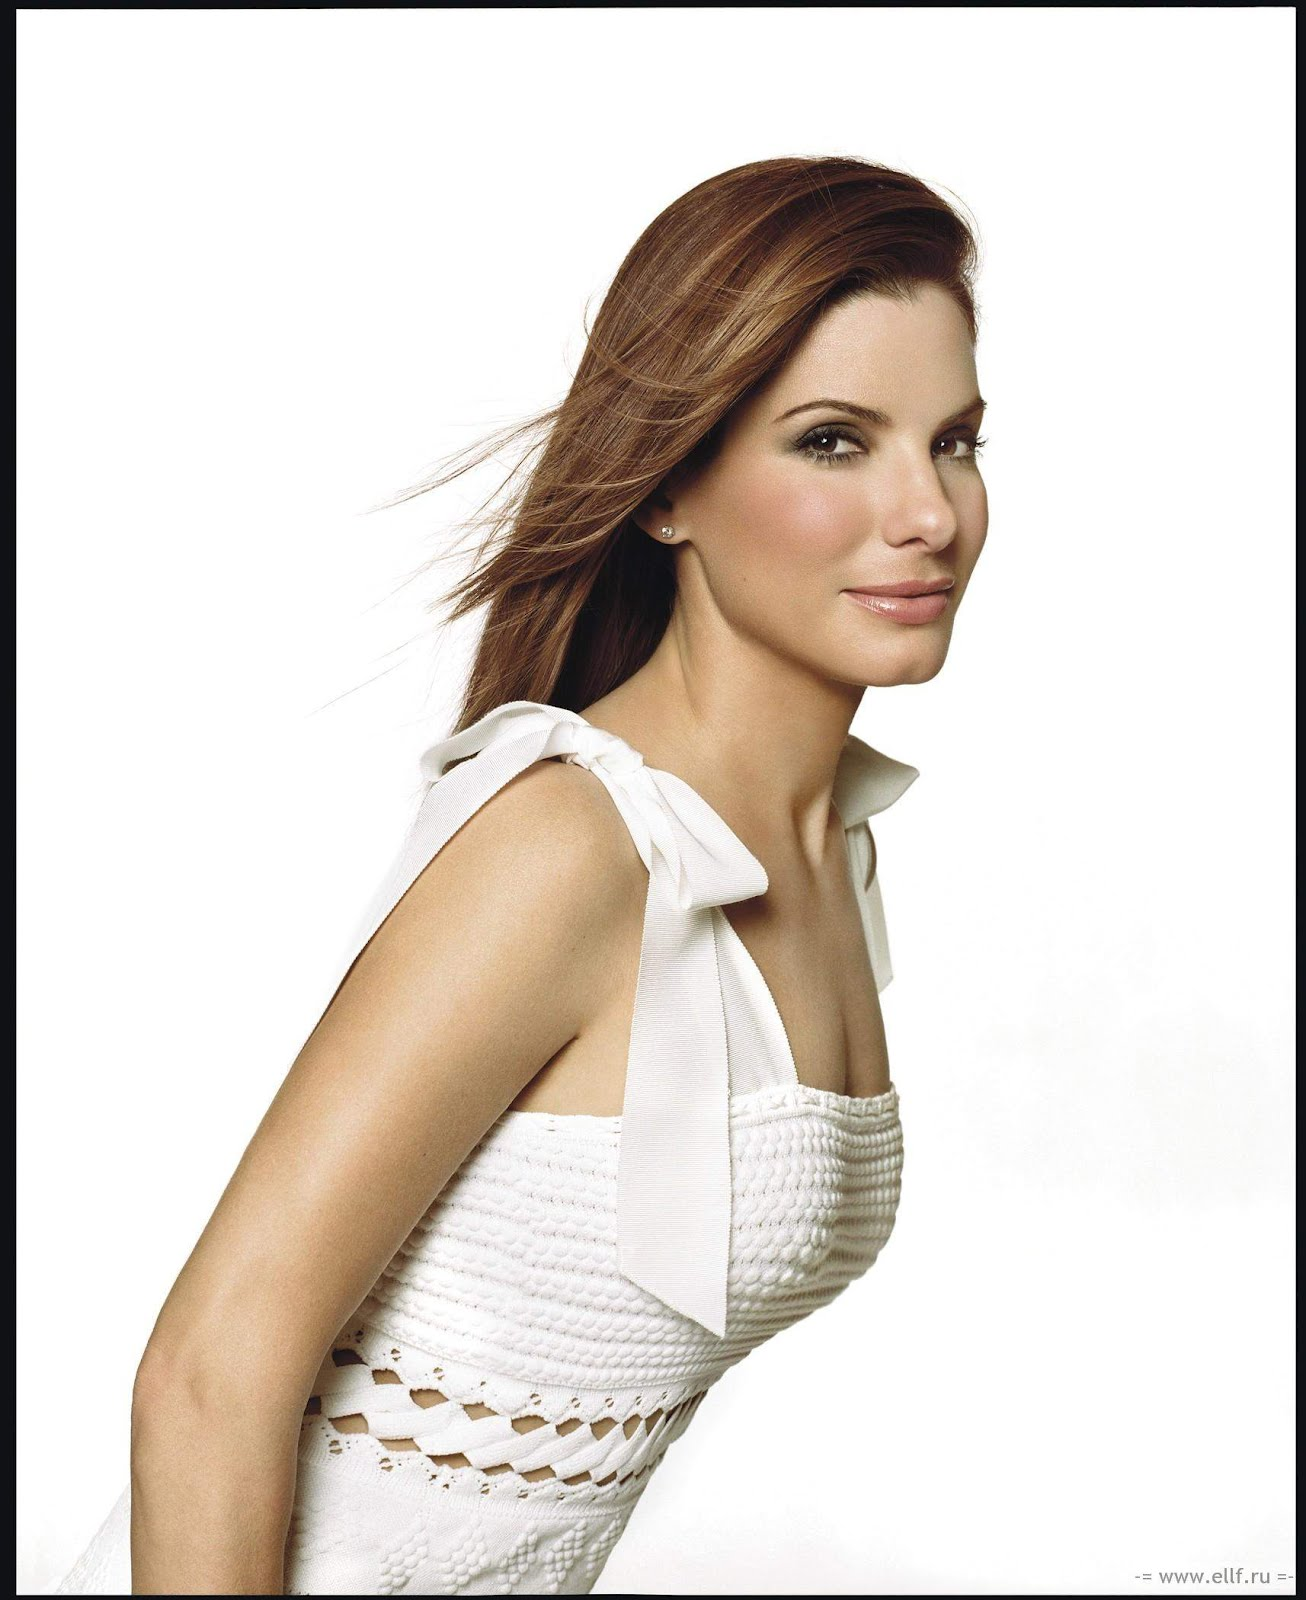 Sandra orlow facebook - Sandra Bullock Hot Images 2012